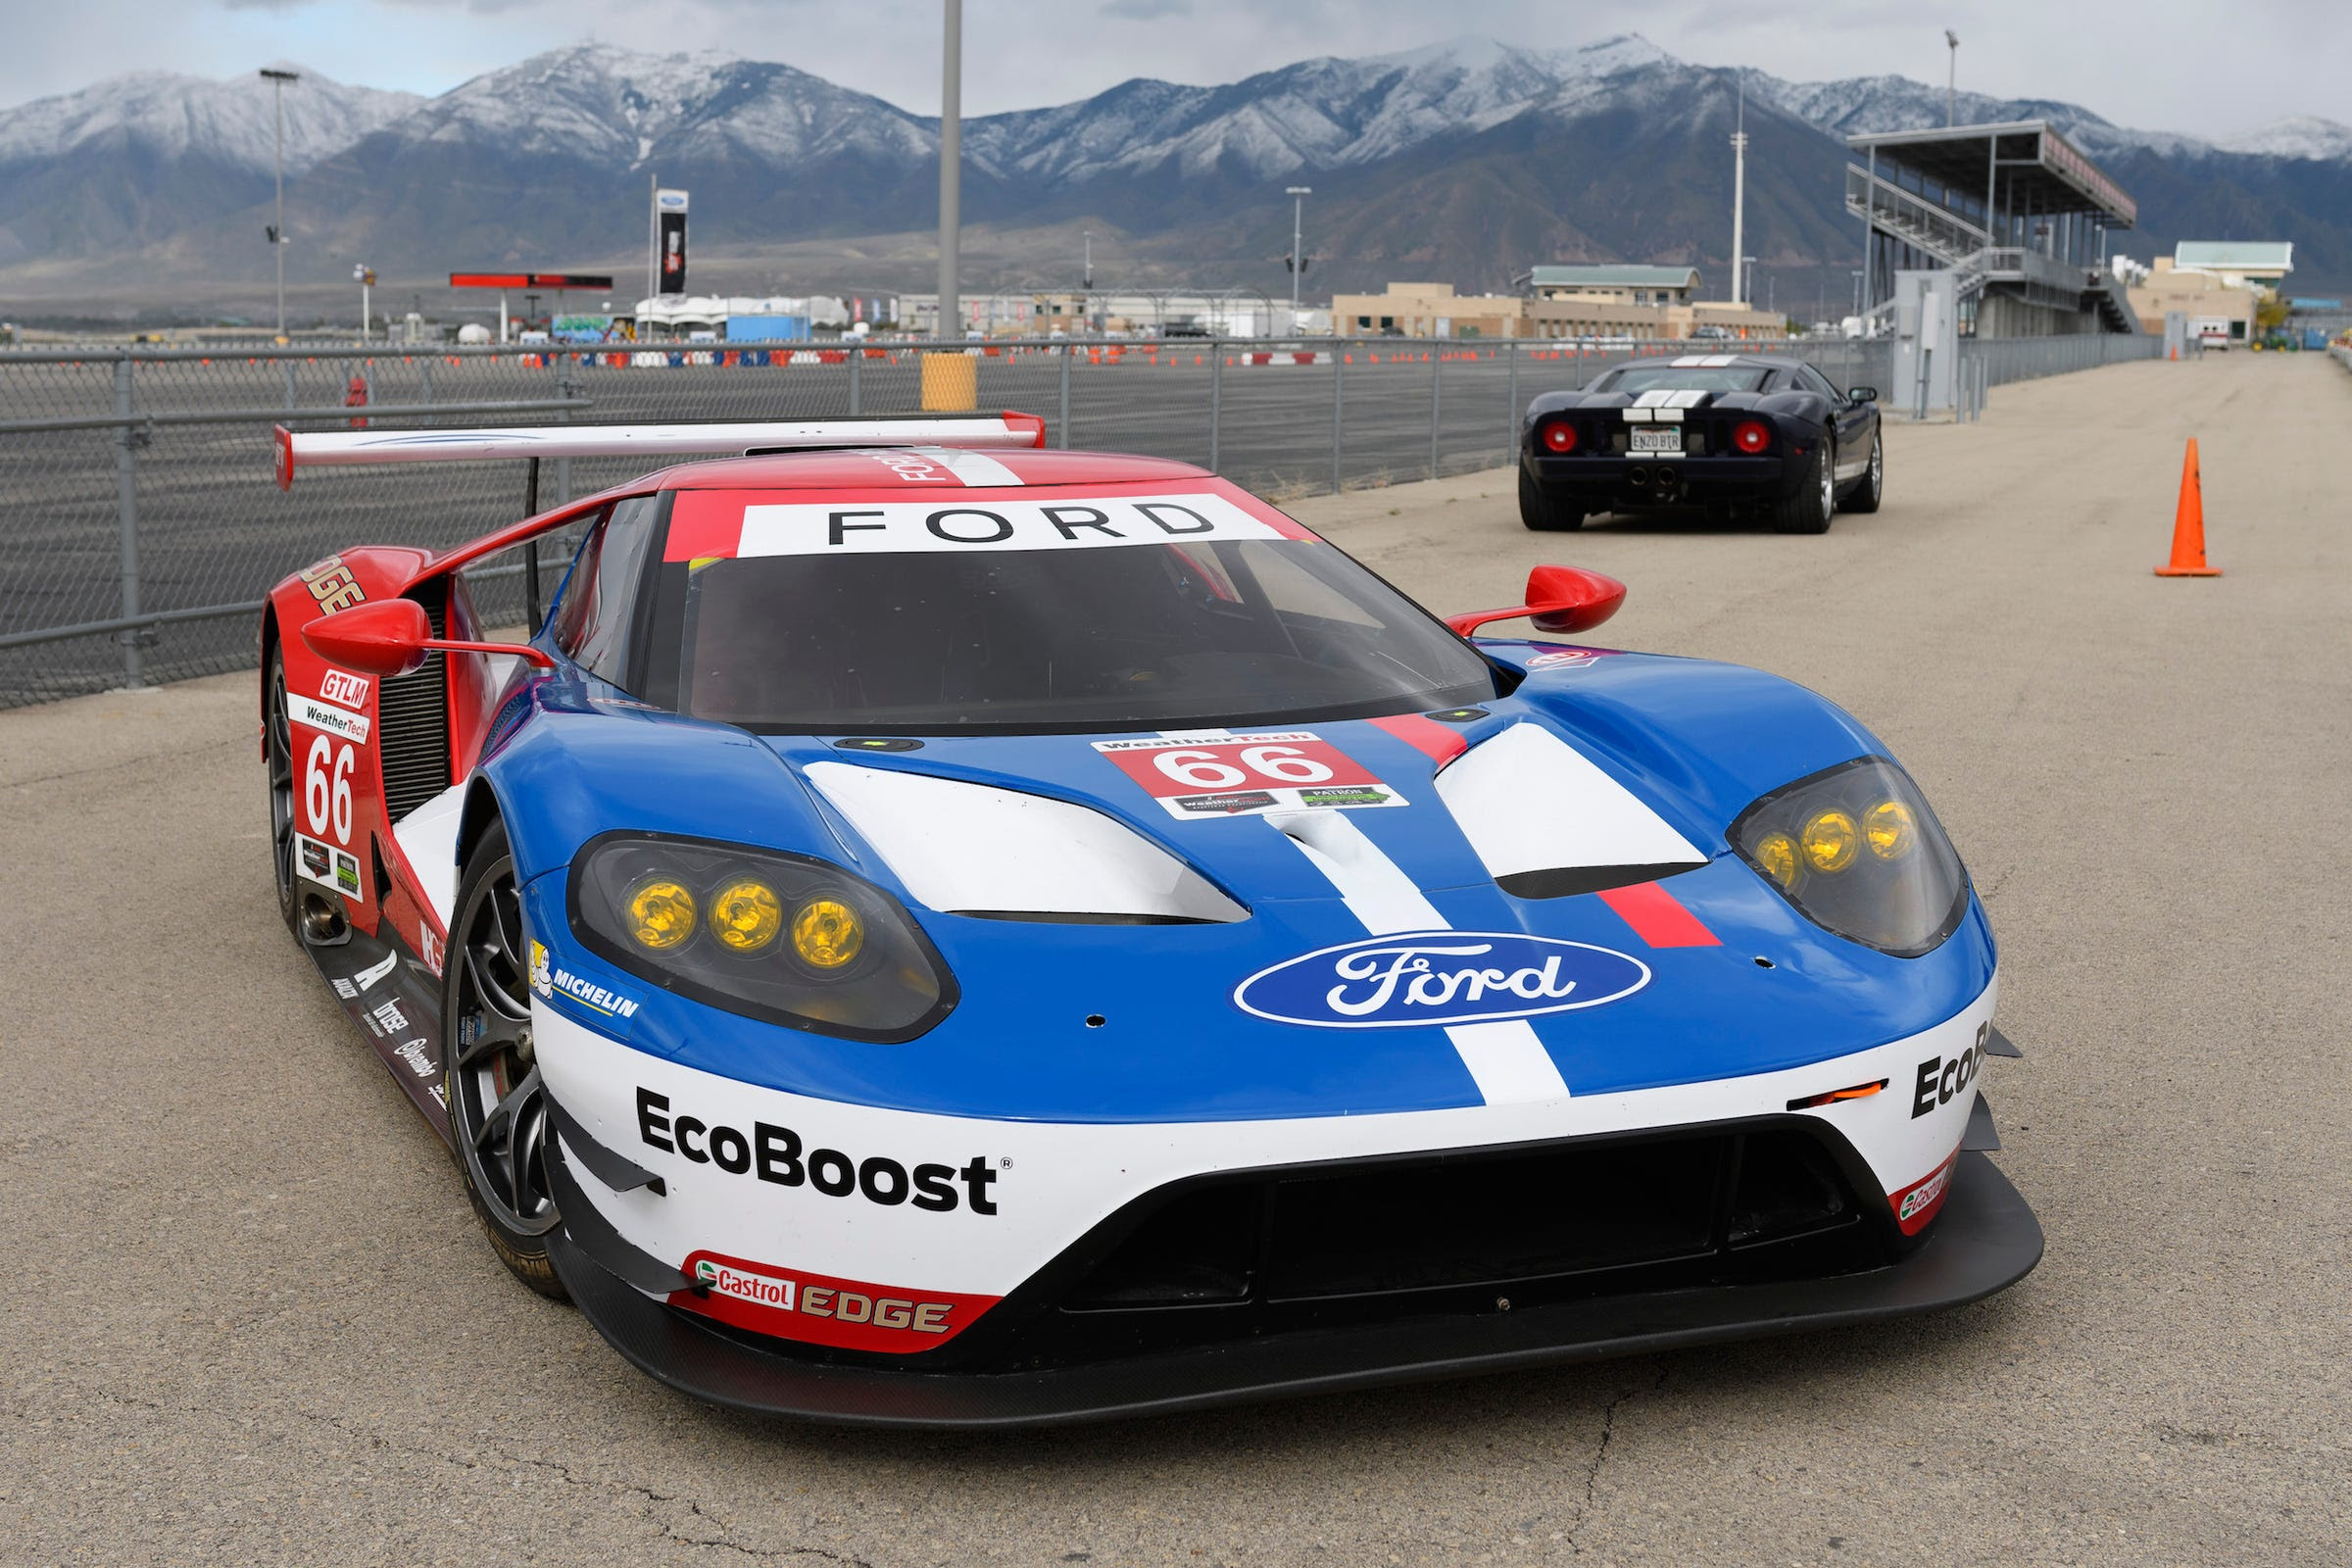 Ford GT Drive race car